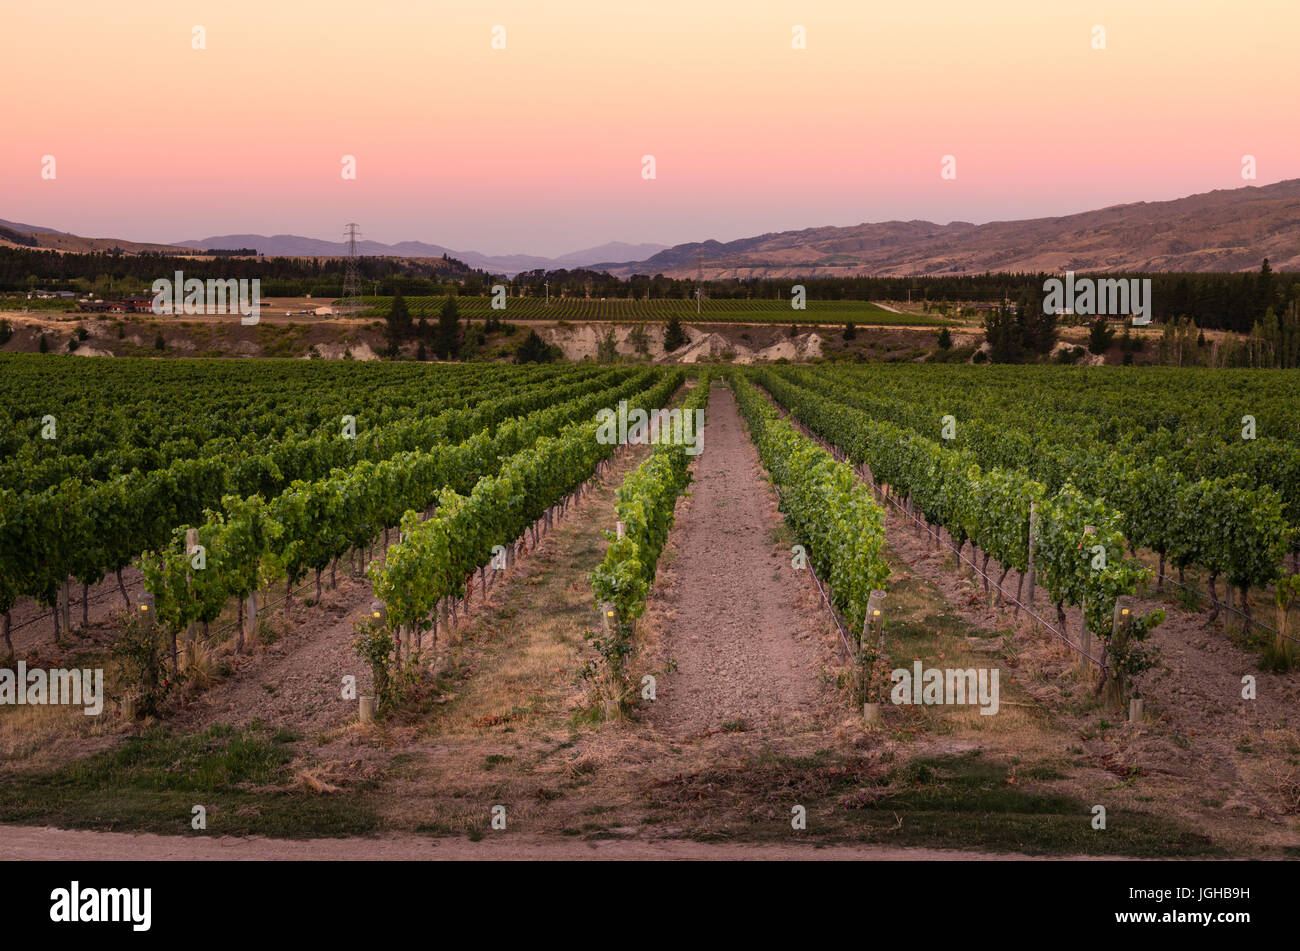 Vineyard Rows at sunset in Bannockburn, central Otago in South Island of New Zealand - Stock Image